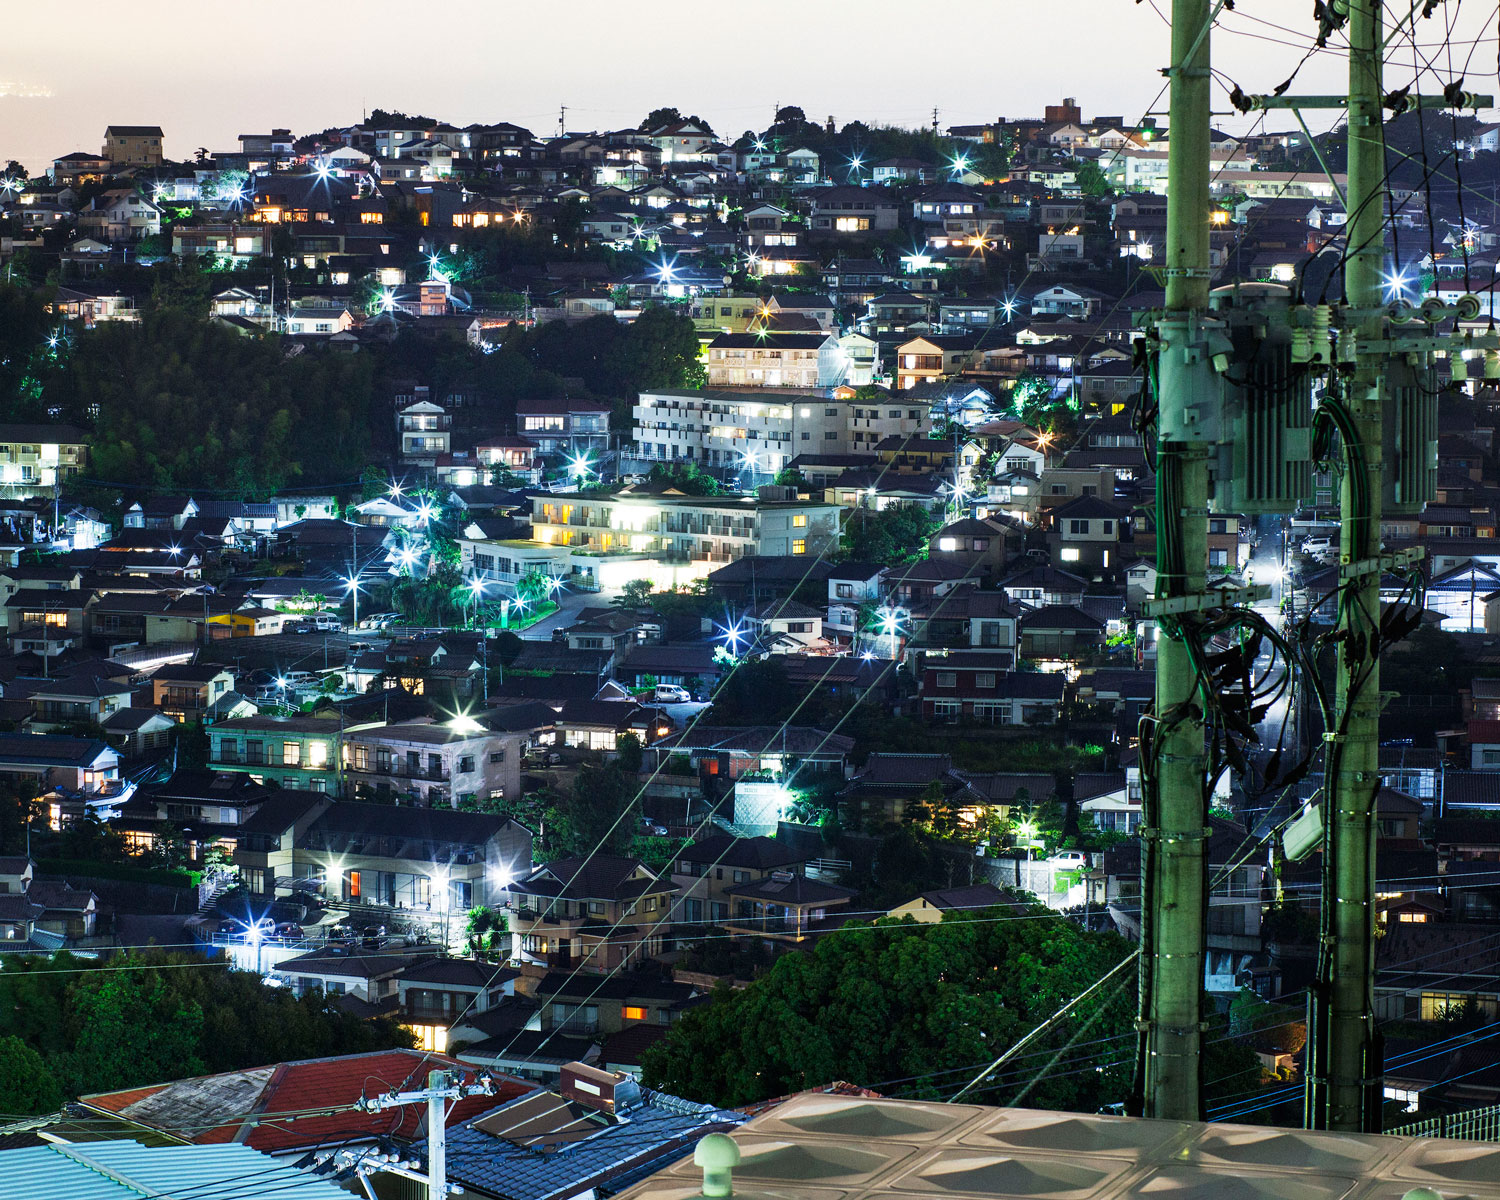 Night in a bed town (Sasebo, Japan 2014)